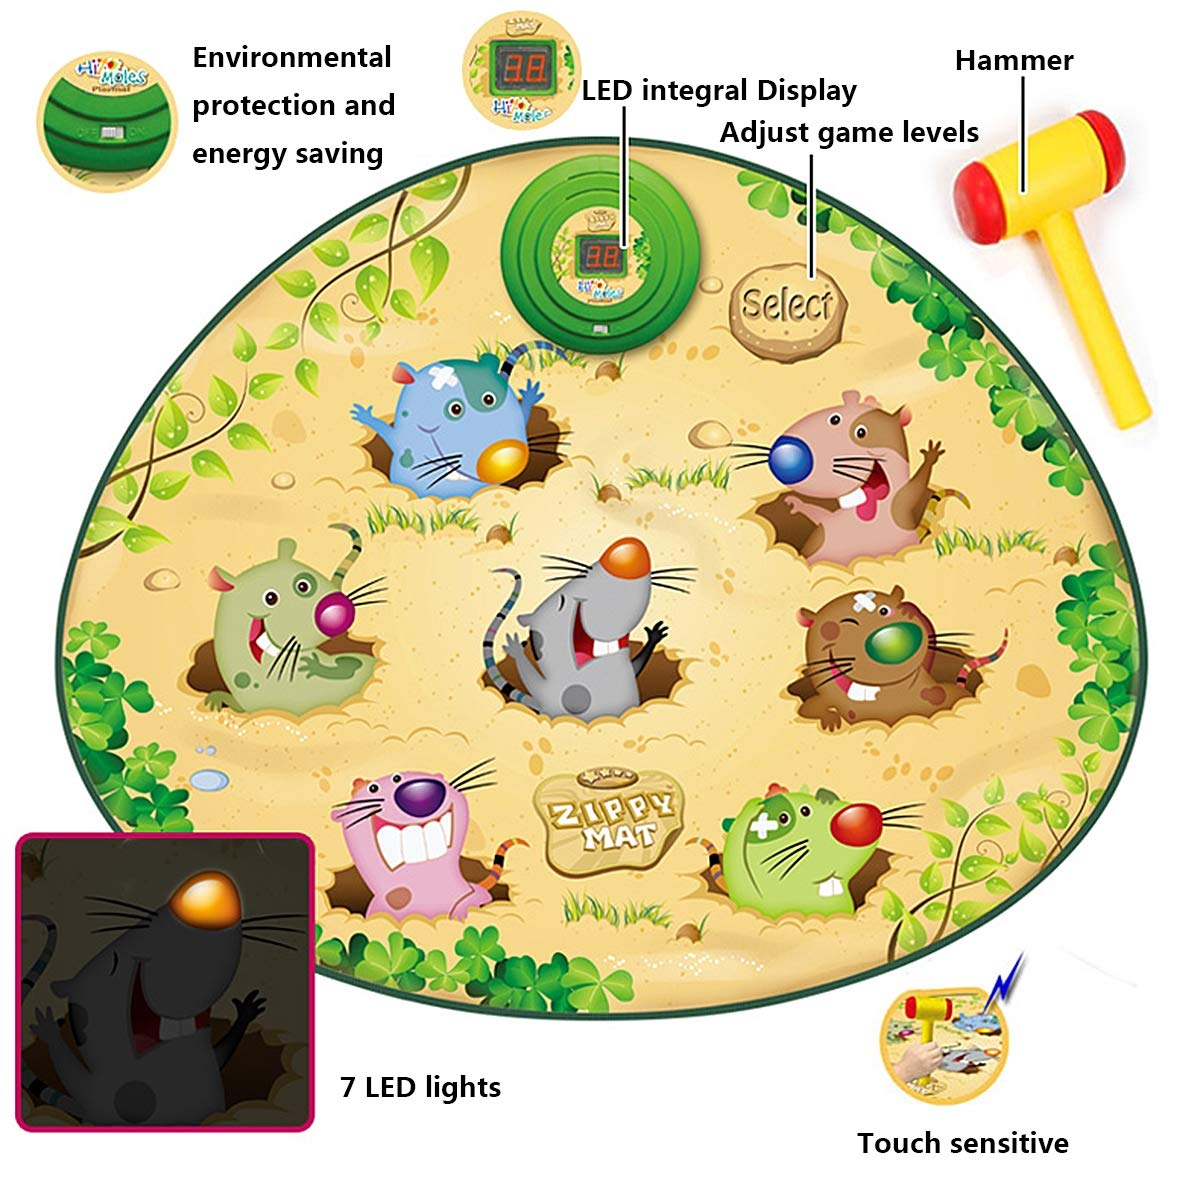 Playing Hamster Game Blanket, Kids Electronic Music Play Mat Security Electronic Keyboard Play Blanket Ideal Toys and Gifts for Children by Eustoma (Image #5)